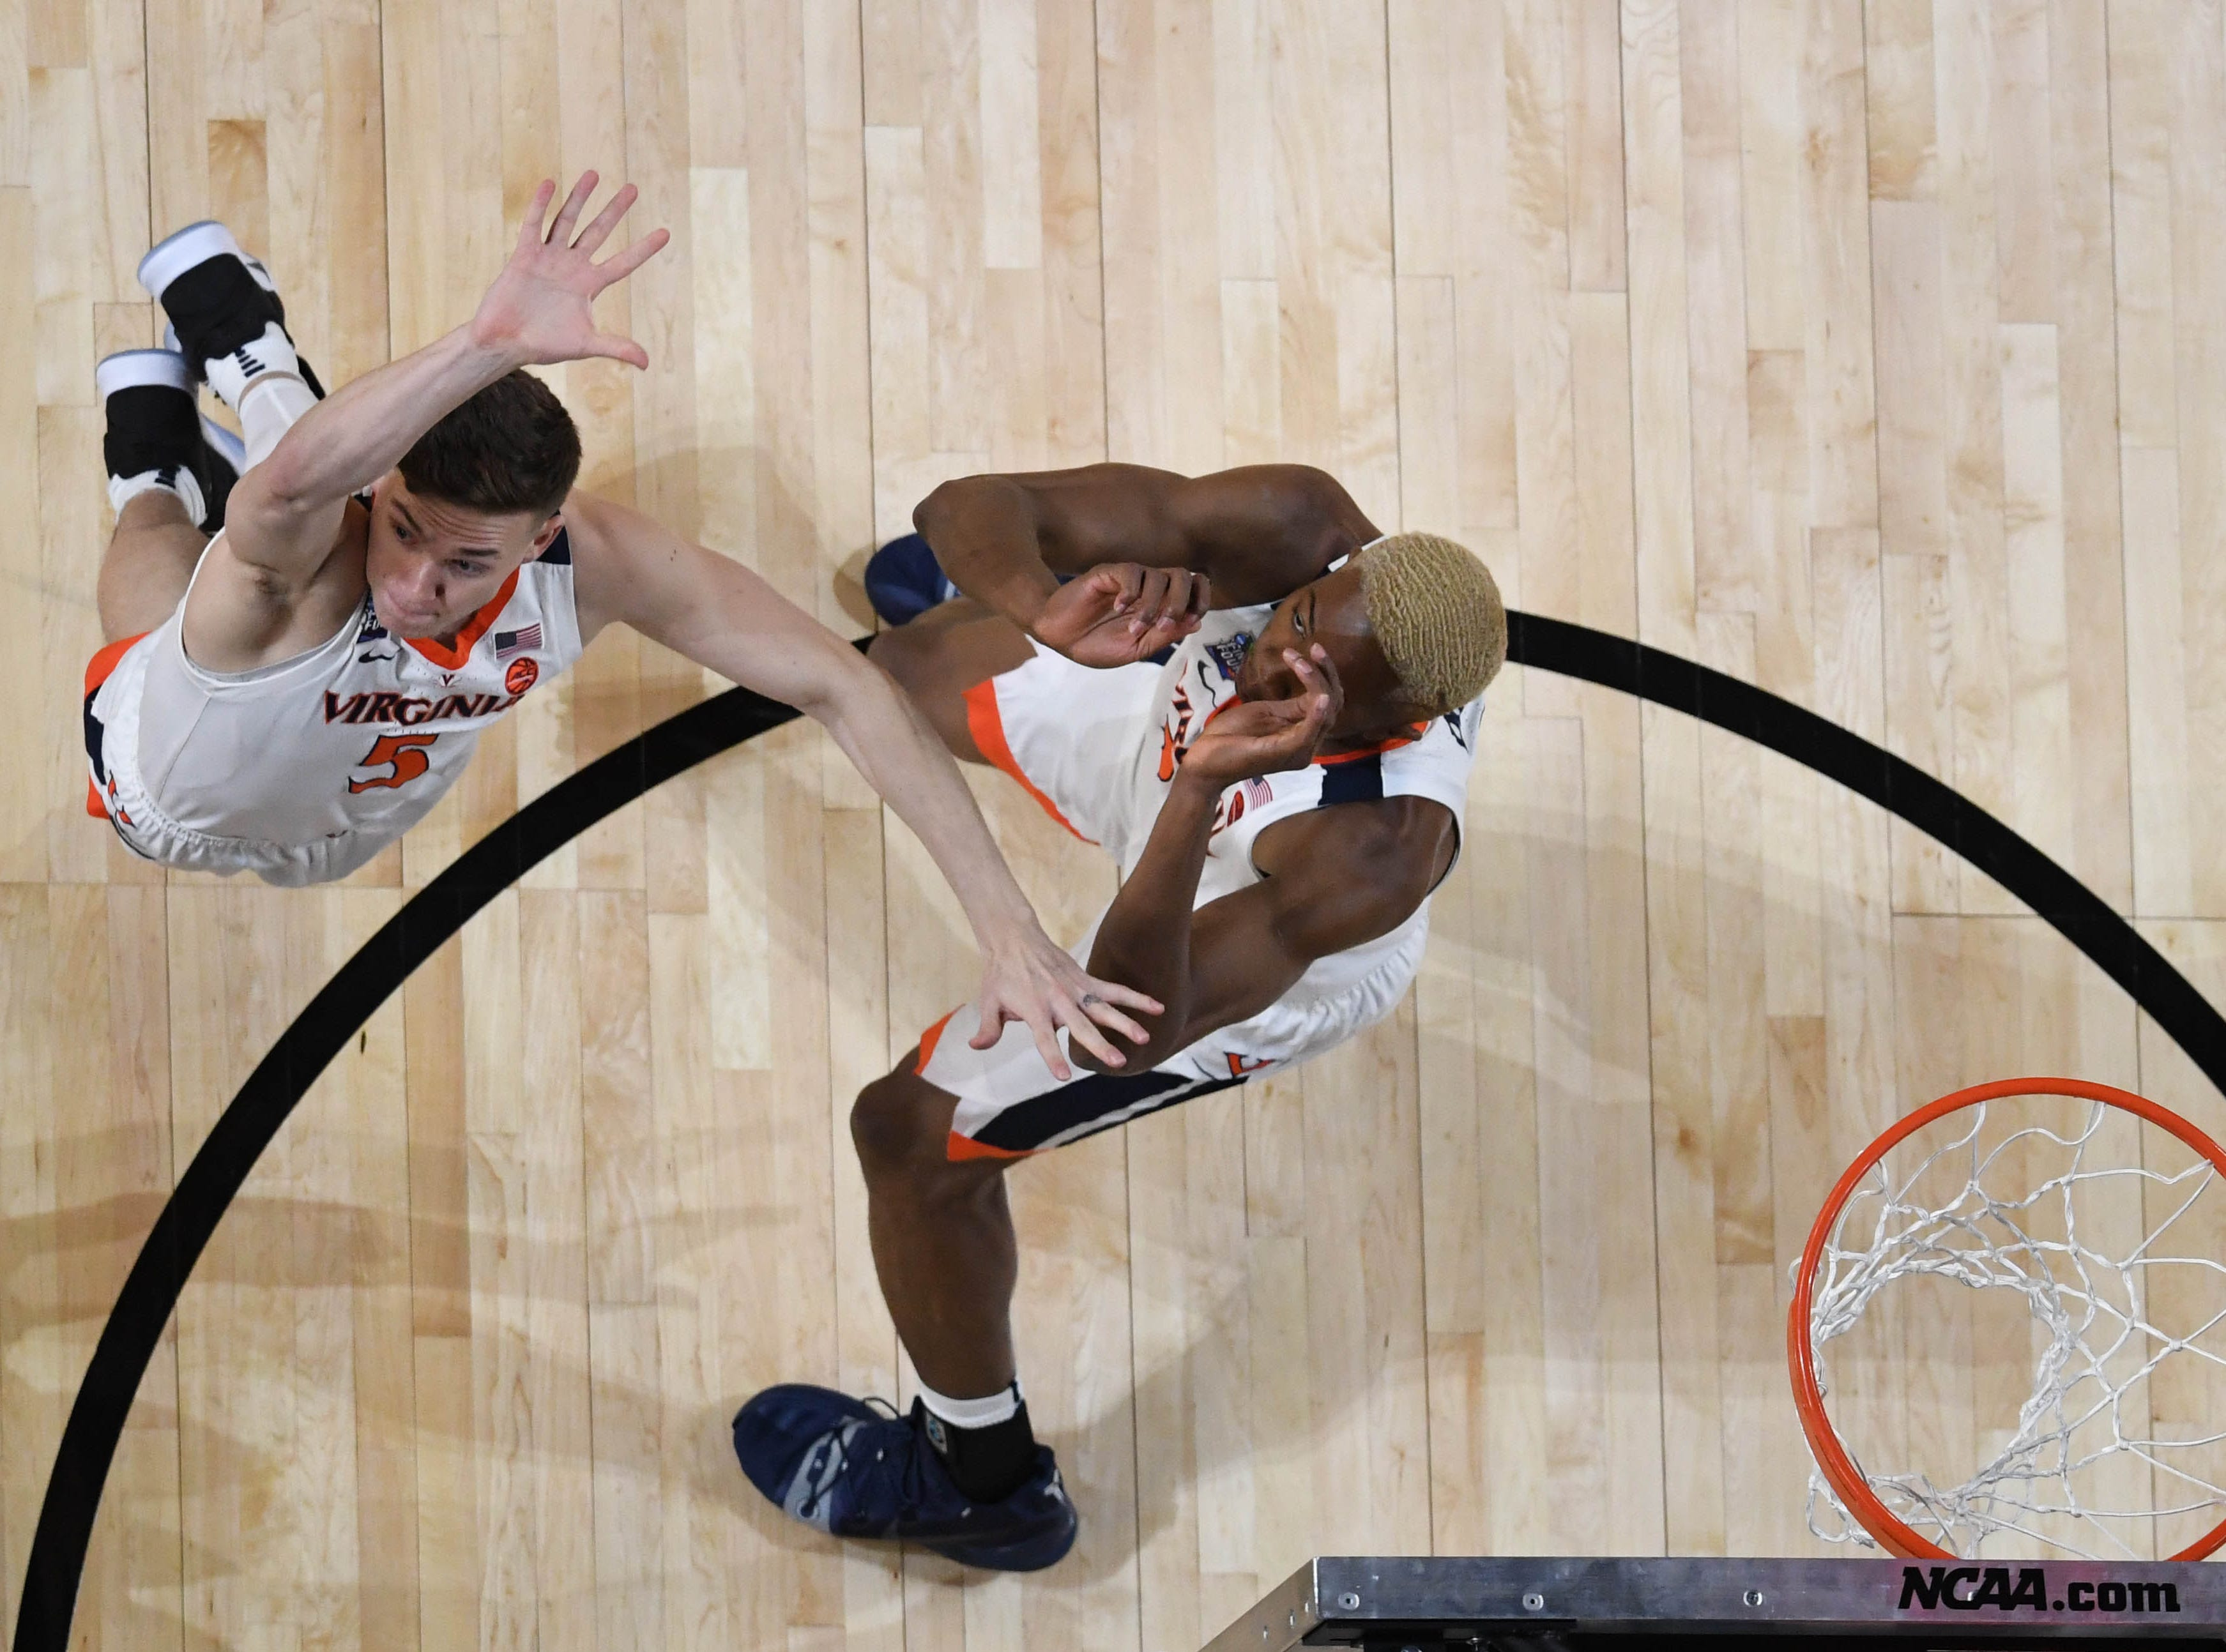 Apr 8, 2019; Minneapolis, MN, USA; Virginia Cavaliers guard Kyle Guy (5) and forward Mamadi Diakite (25) defend the net against the Texas Tech Red Raiders in the first half in the championship game of the 2019 men's Final Four at US Bank Stadium. Mandatory Credit: Robert Deutsch-USA TODAY Sports